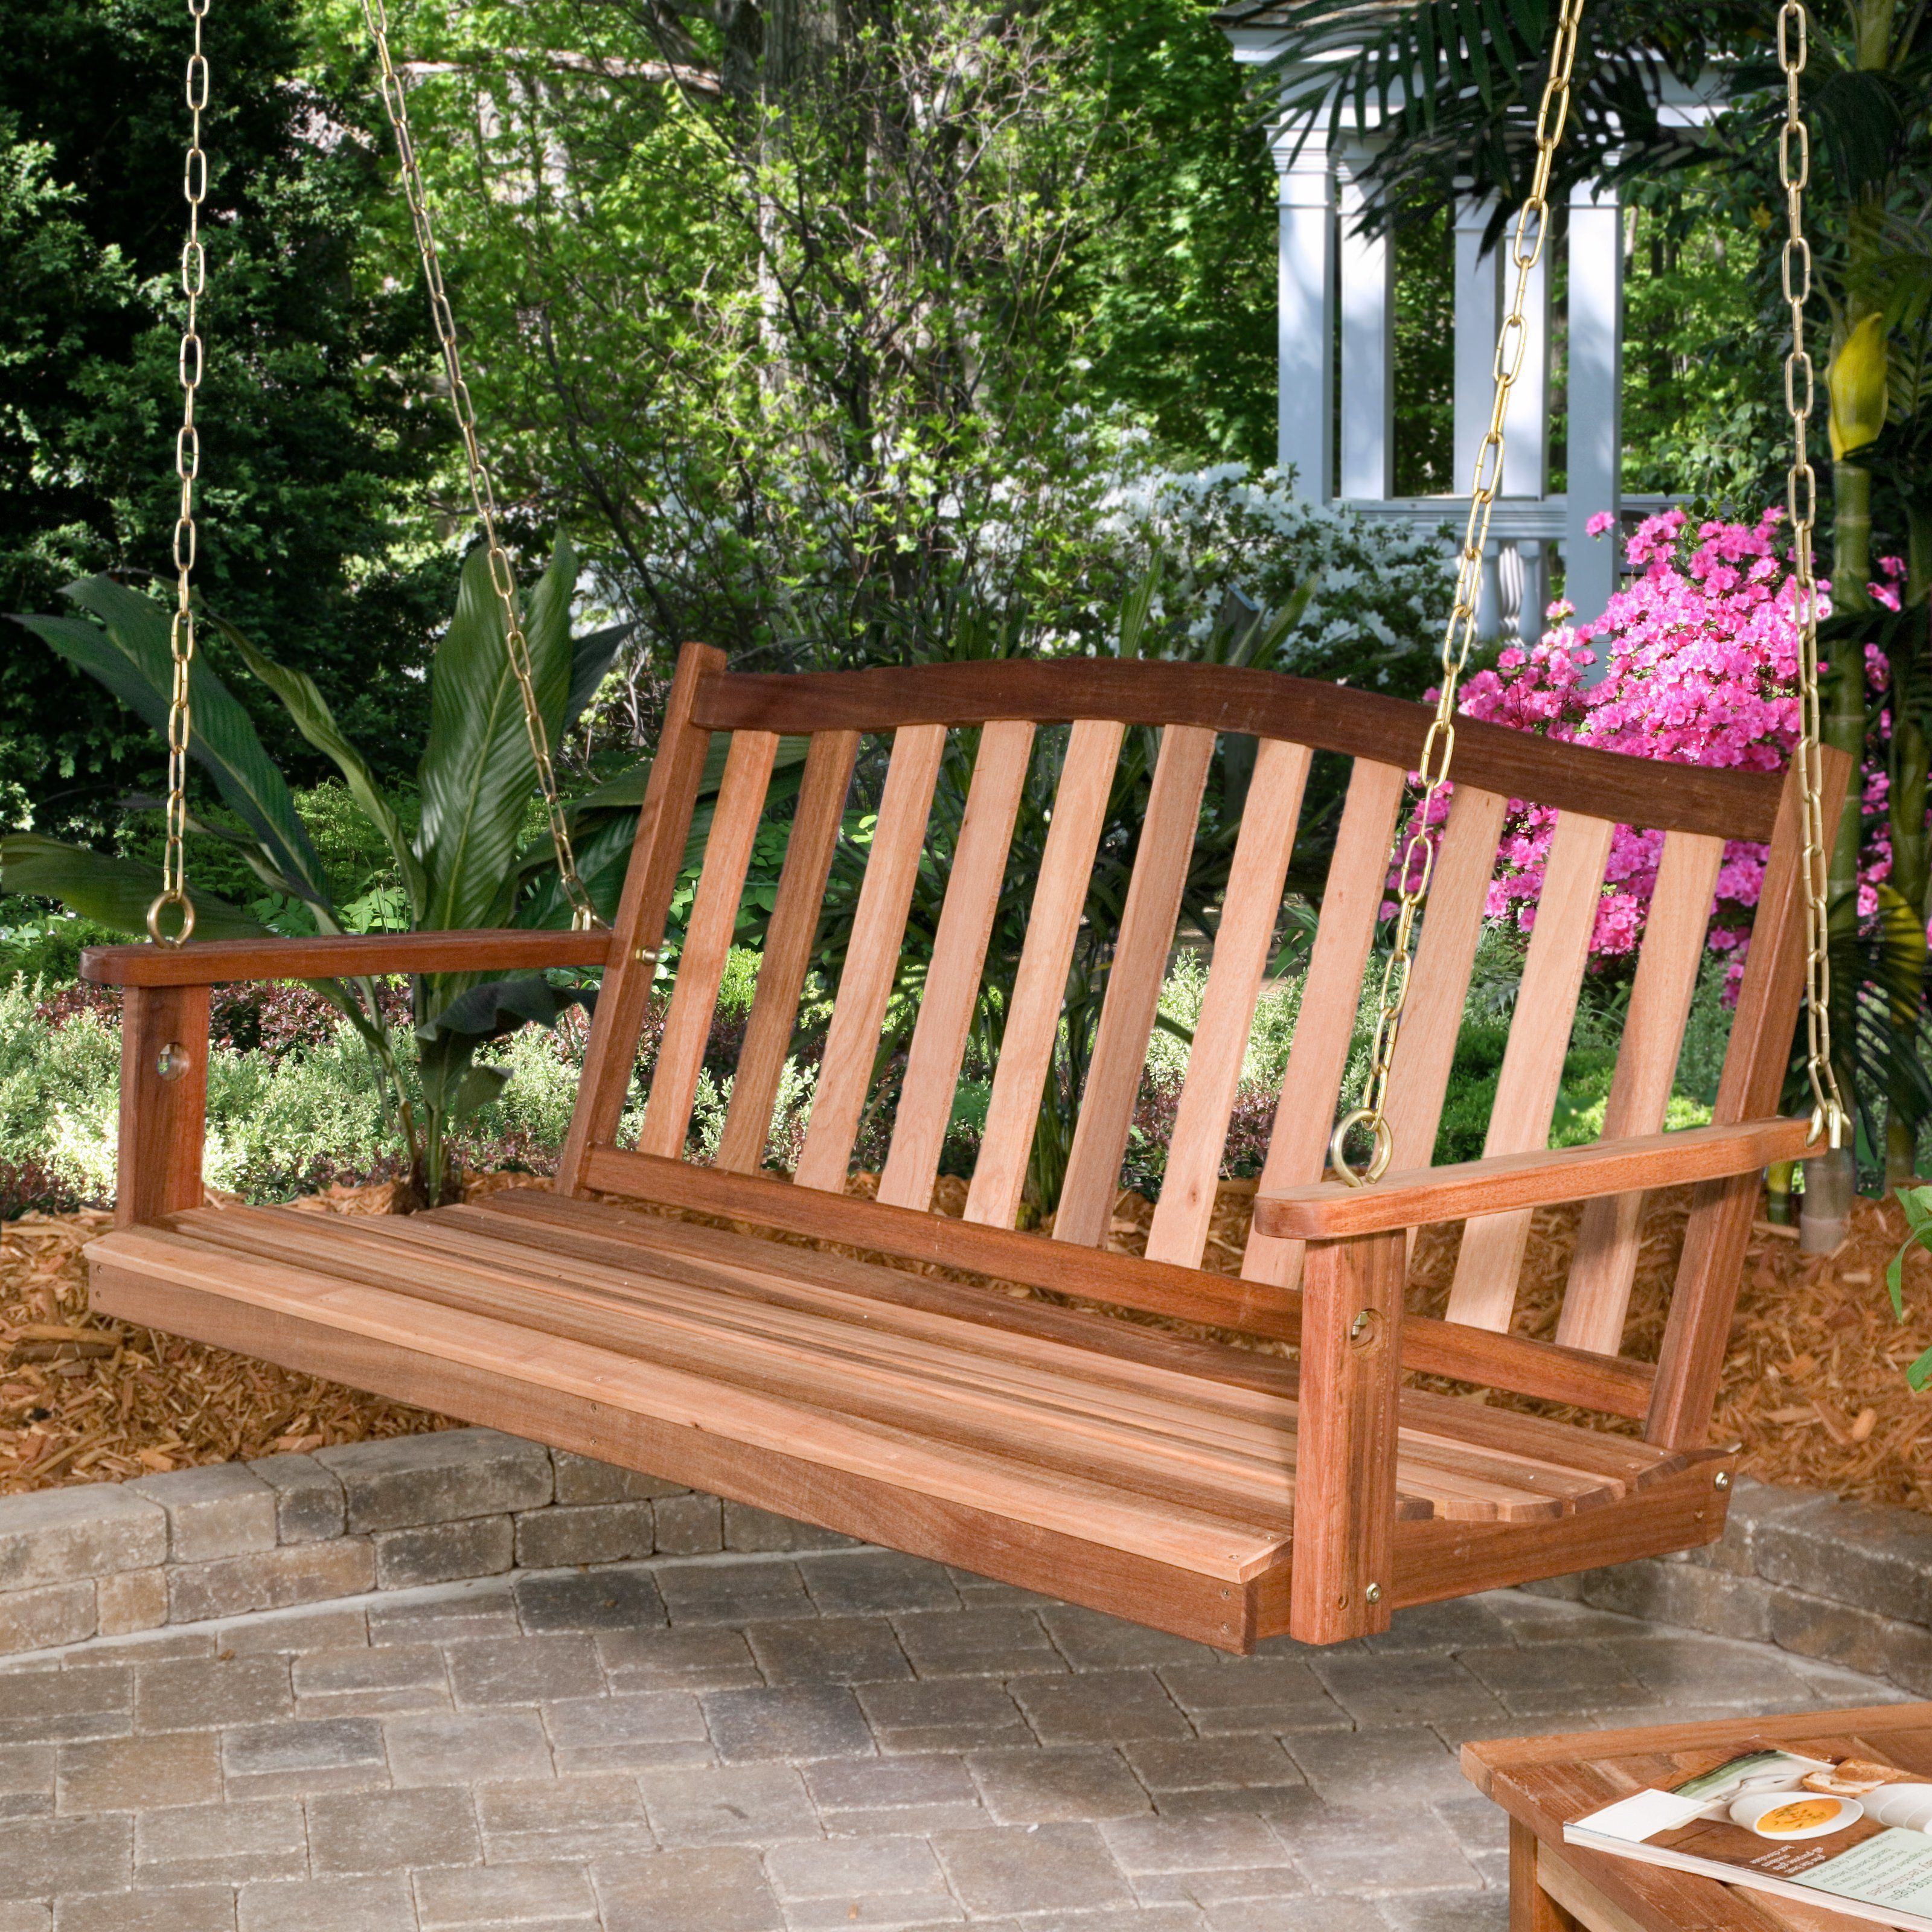 Belham Living Richmond Curved Back Porch Swing The C Coast Is What Relaxing All About With Hanging Hardware